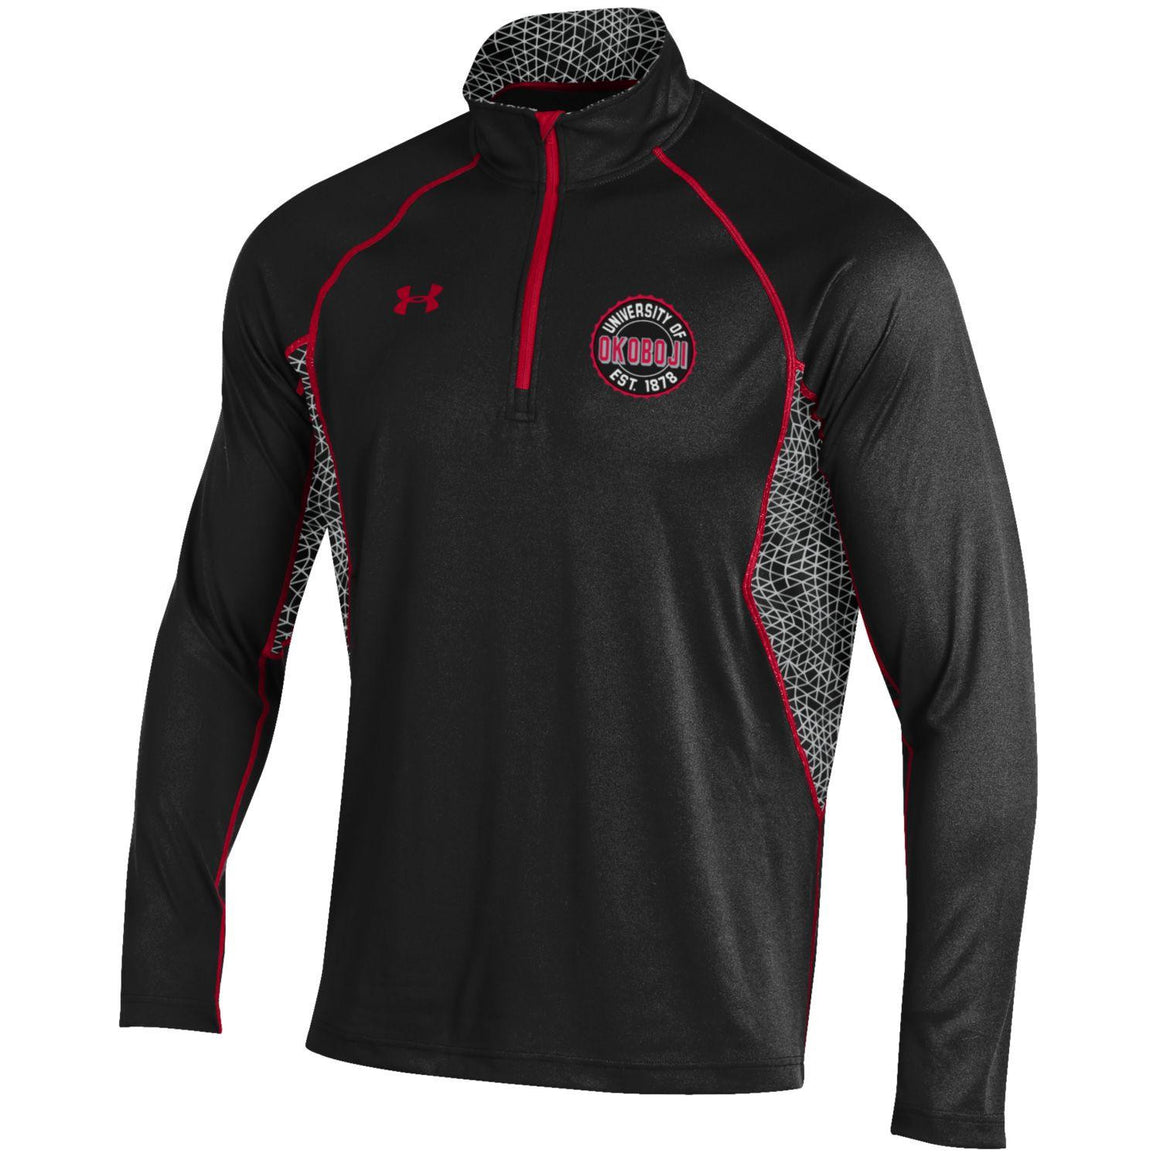 U of O Apex Tech 1/4 Zip